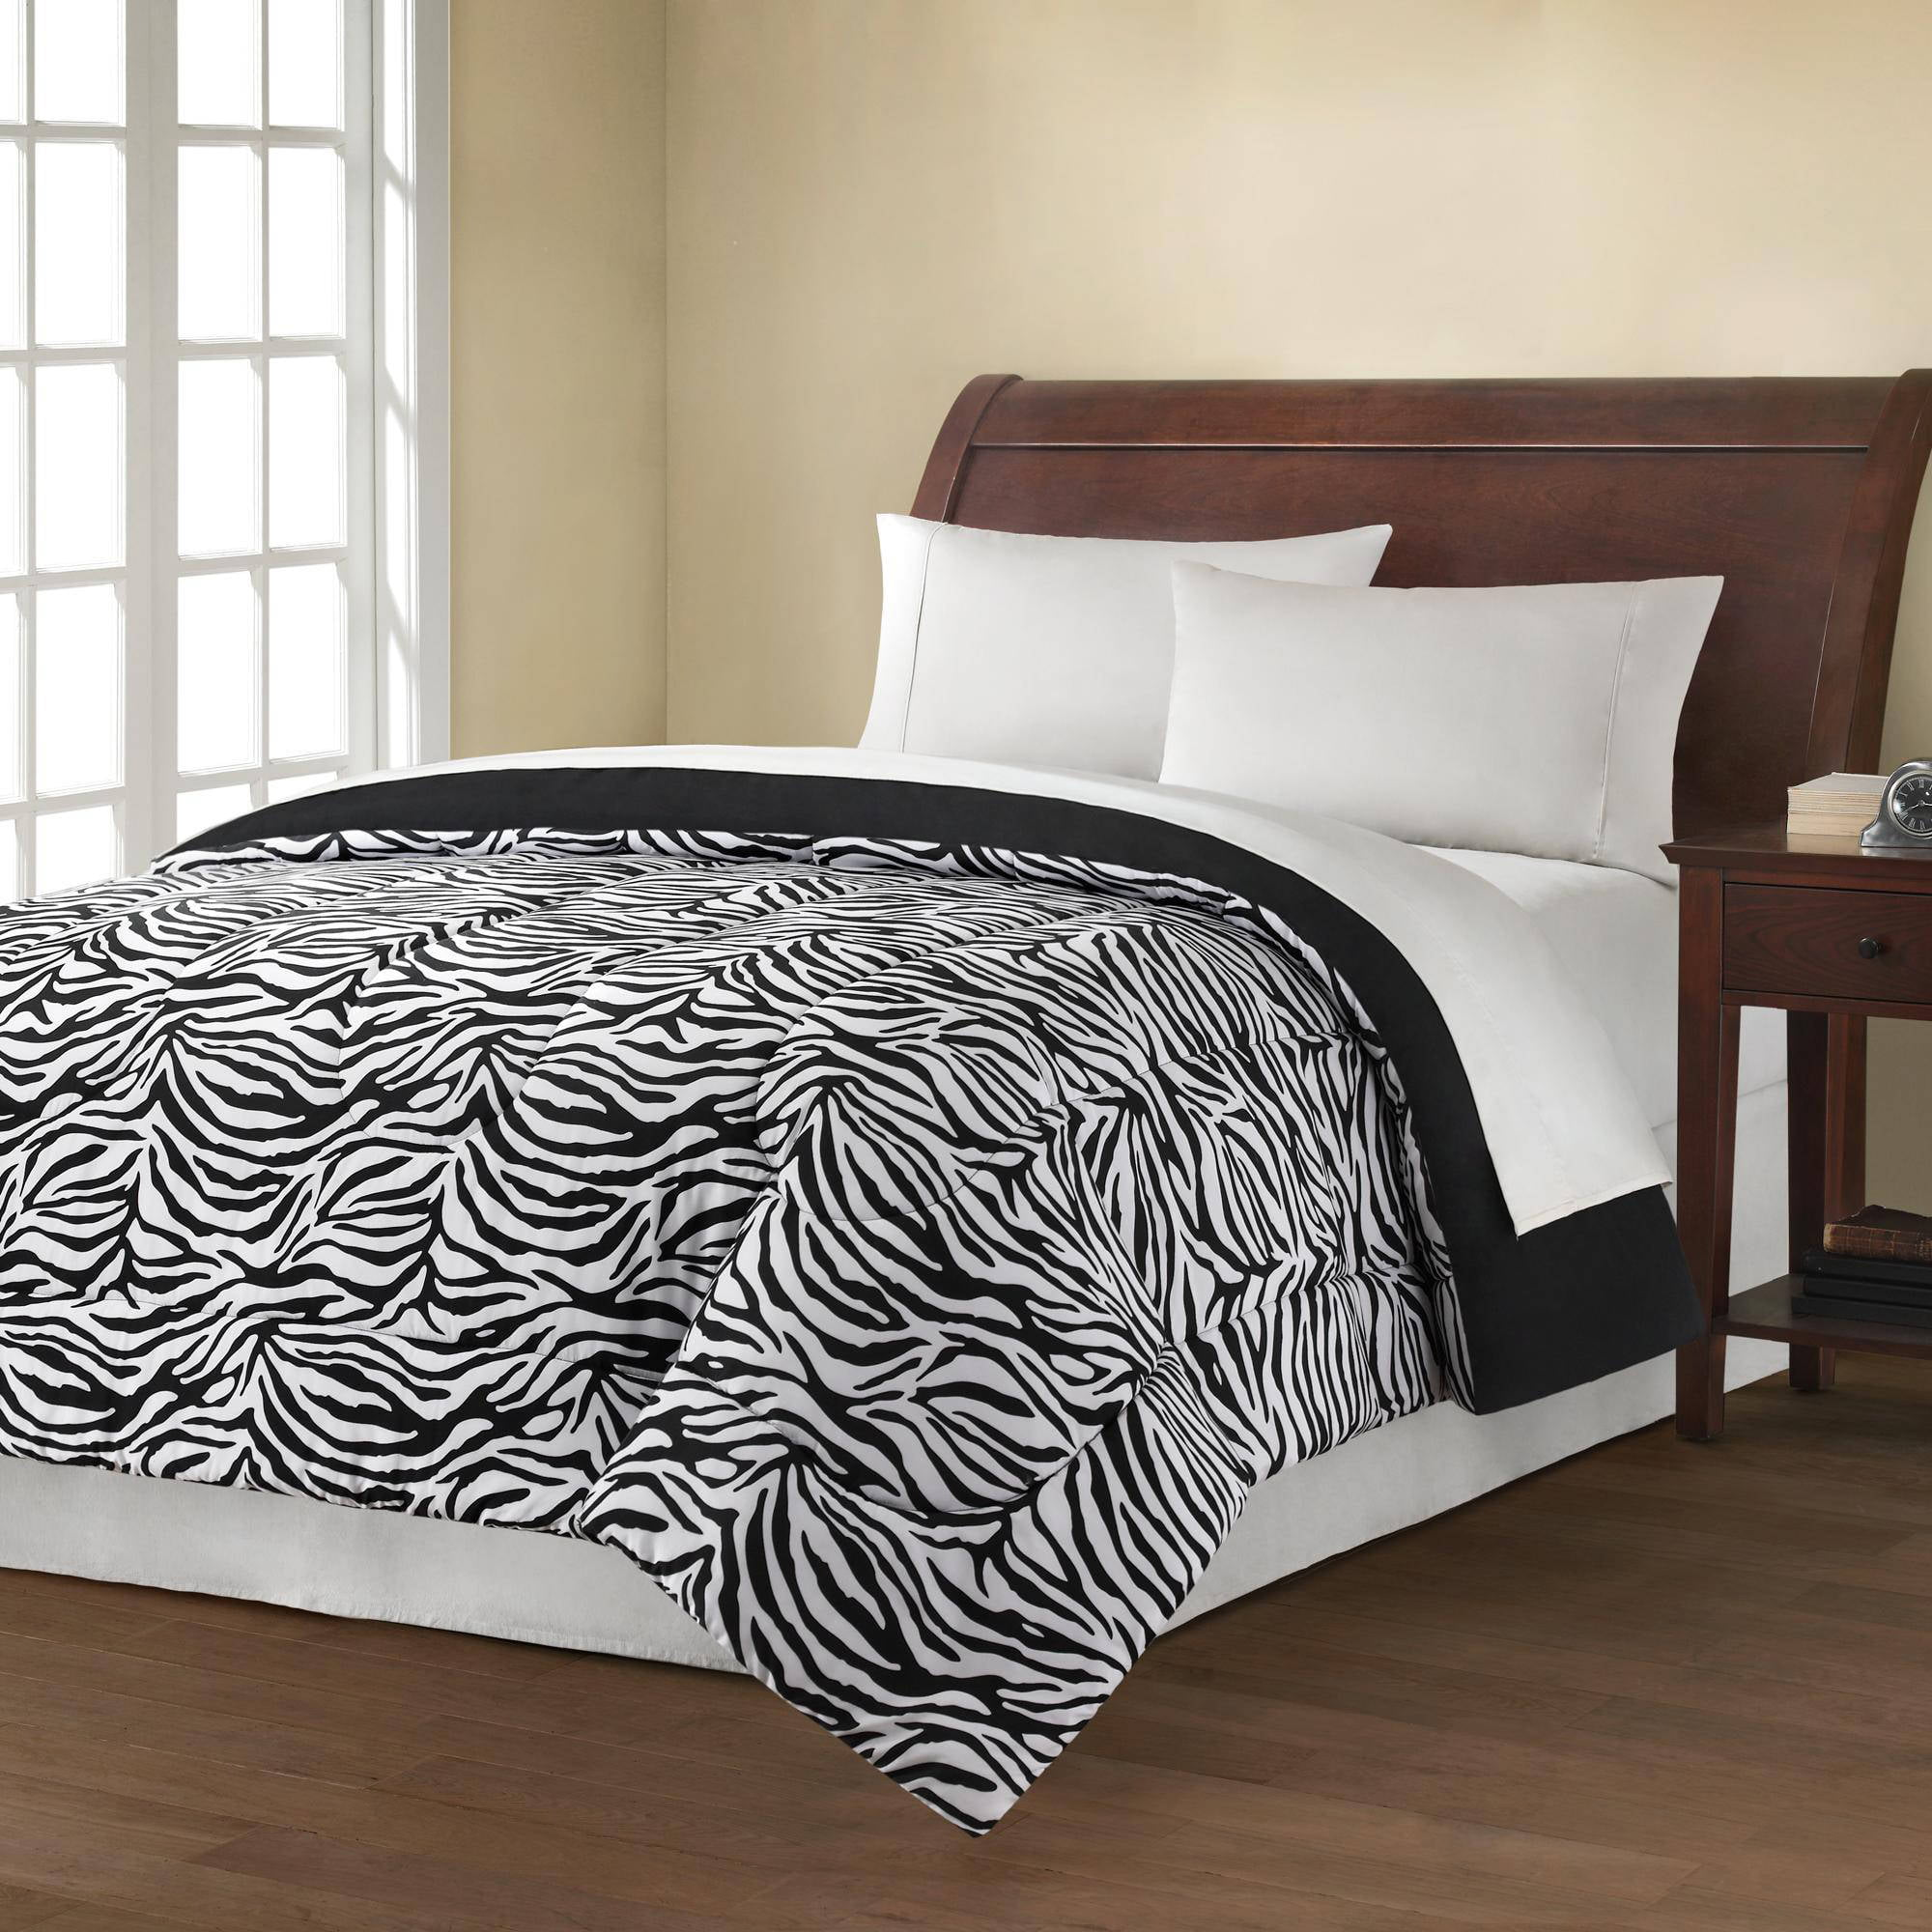 Black and white bedding walmart - Black And White Bedding Walmart 11